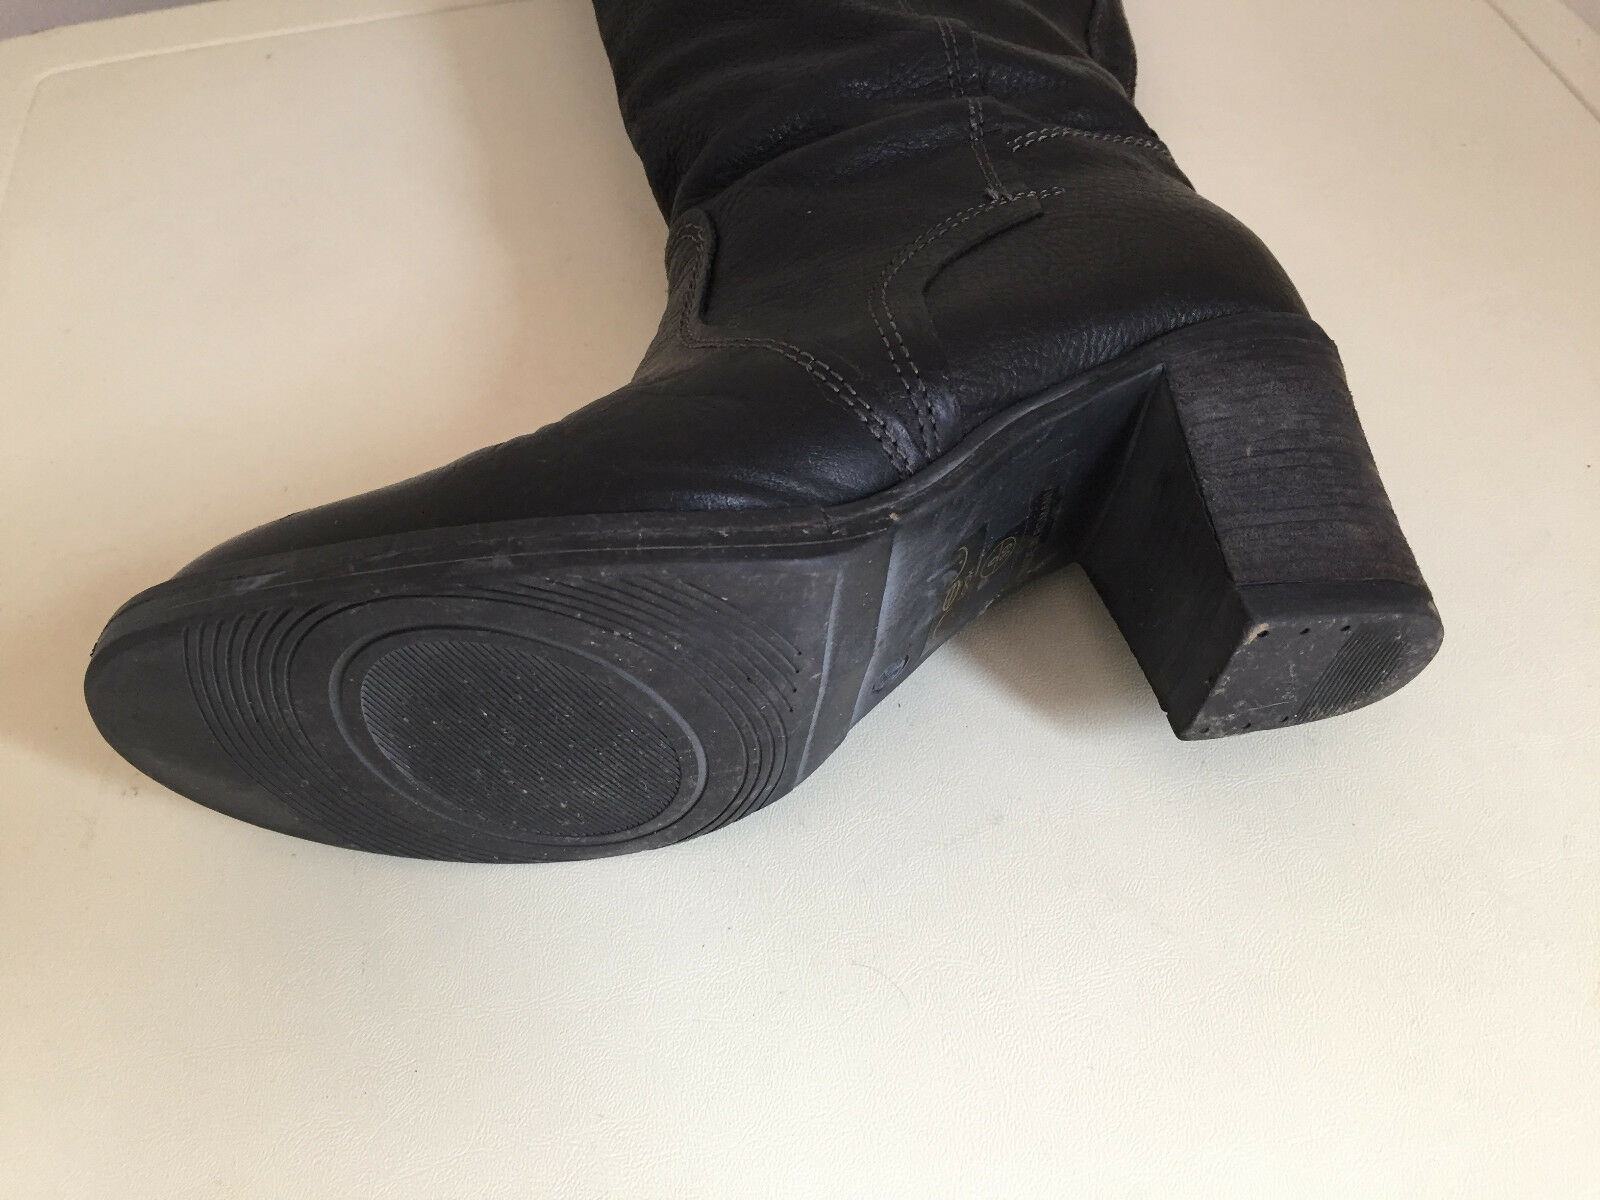 WOMEN LADIES NEW LOOK BLACK KNEE WITH HIGH LEATHER BOOTS WITH KNEE FLEECE LINING SIZE 6 b81741